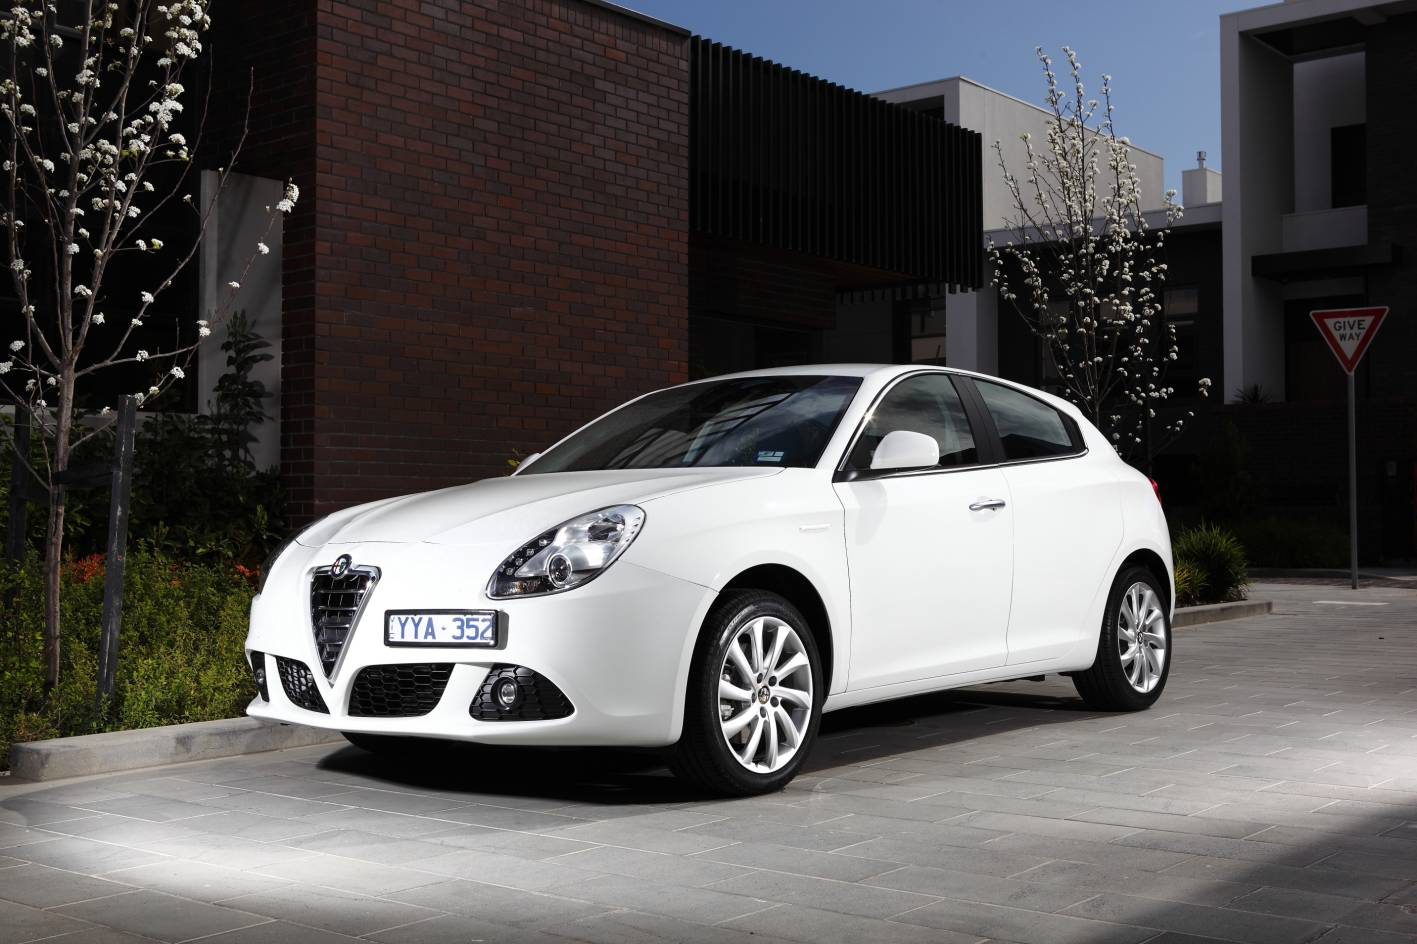 alfa romeo cars news 2014 giulietta gets new engine. Black Bedroom Furniture Sets. Home Design Ideas